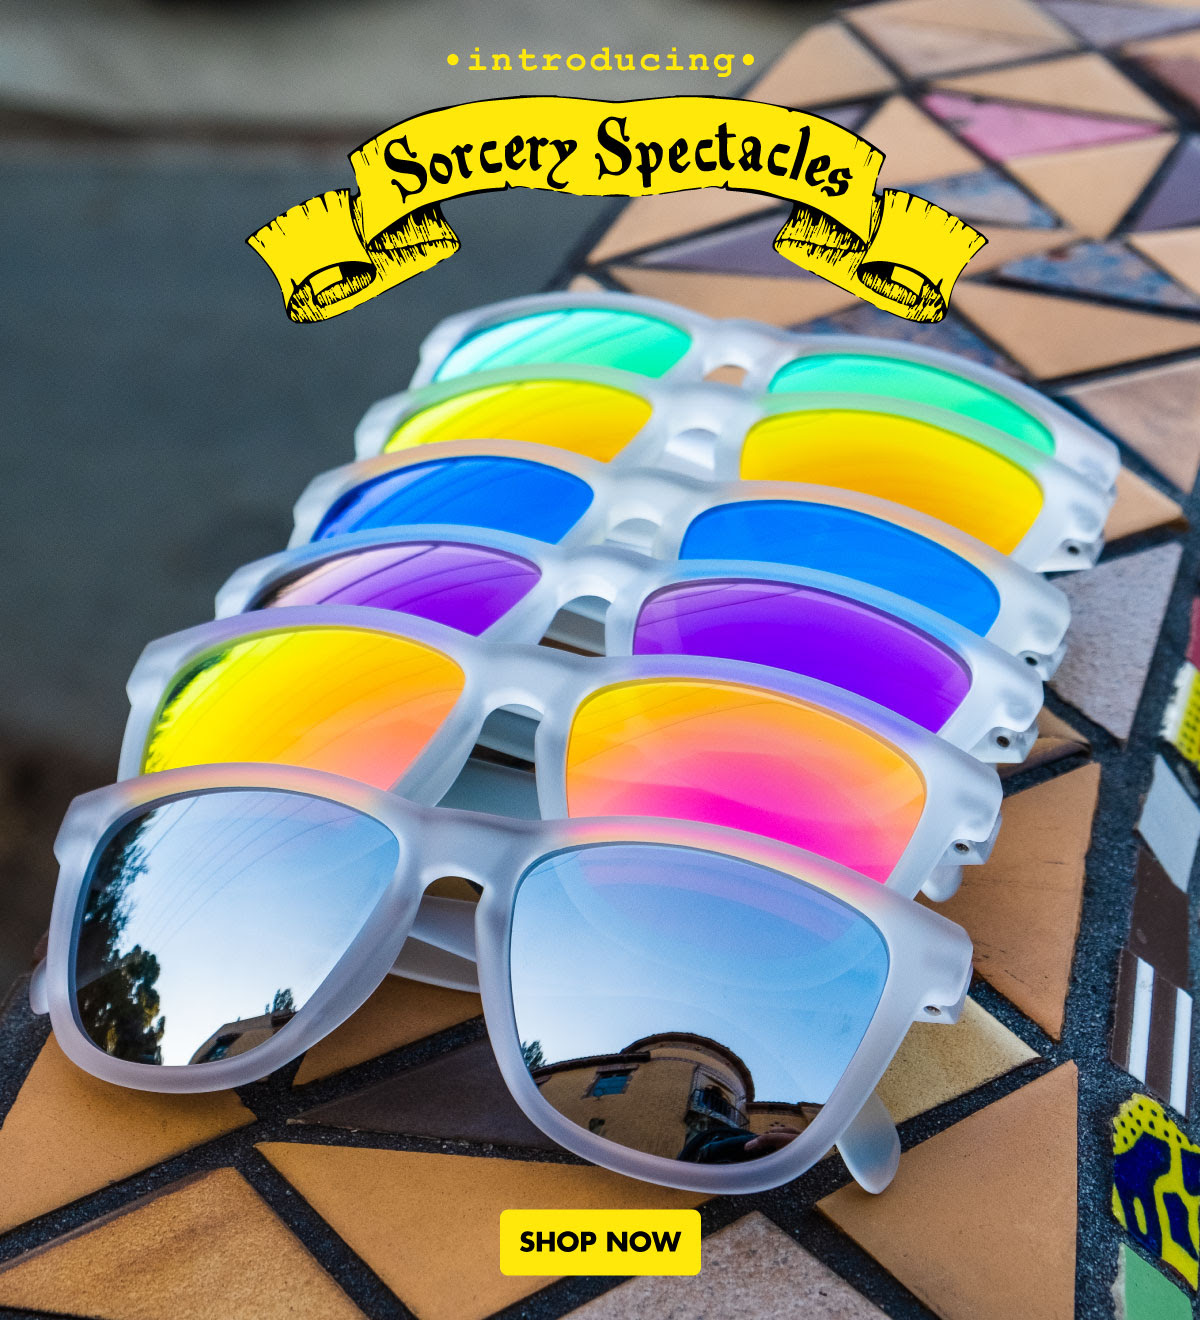 Goodr Sorcery Spectacles Sunglasses